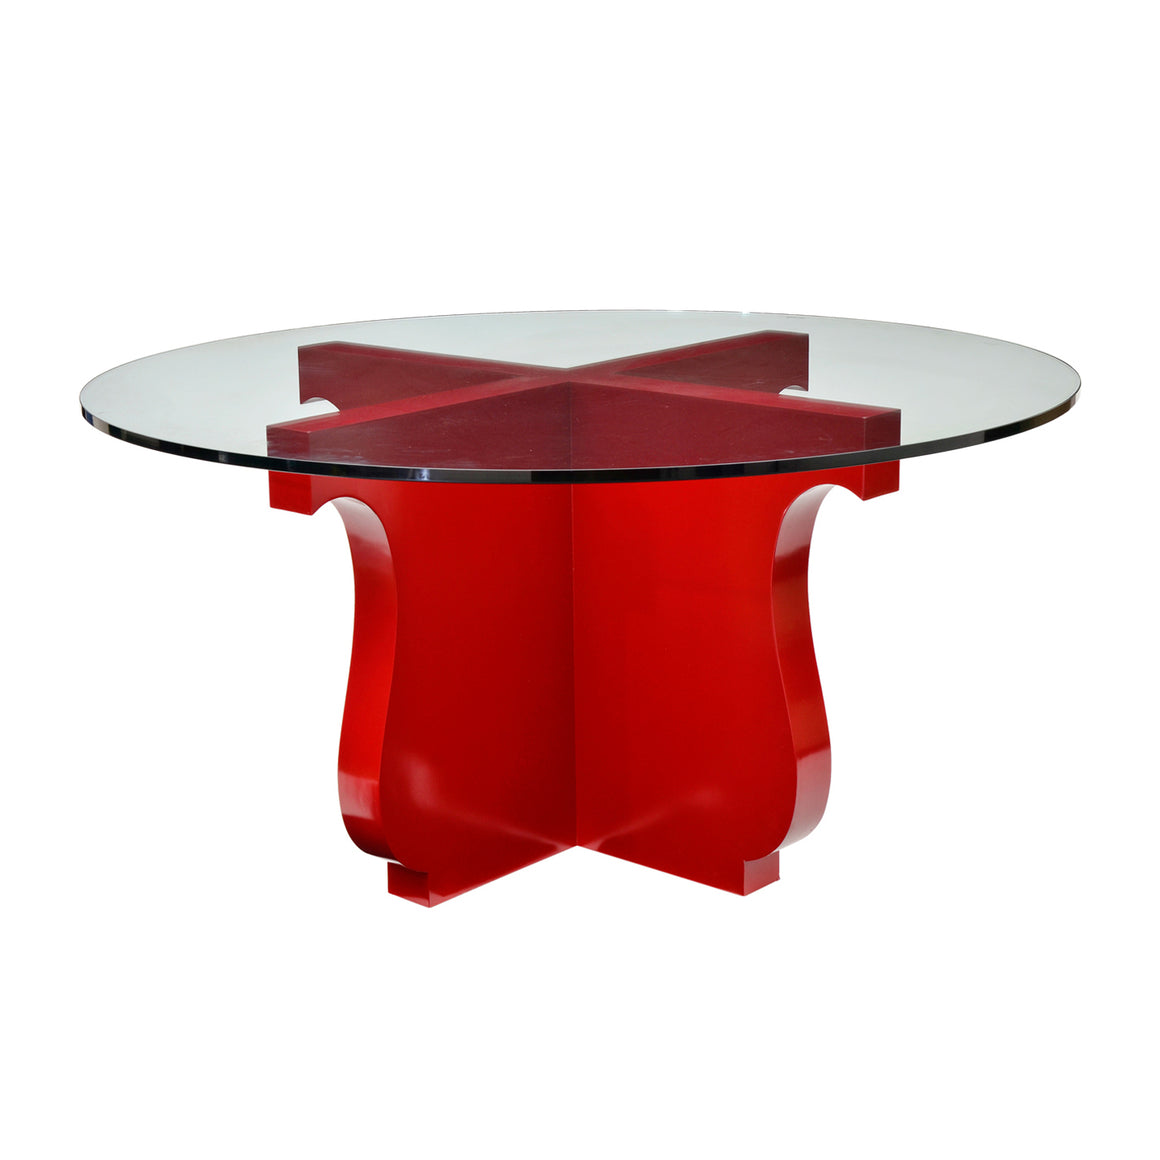 Lipstick Dining Table